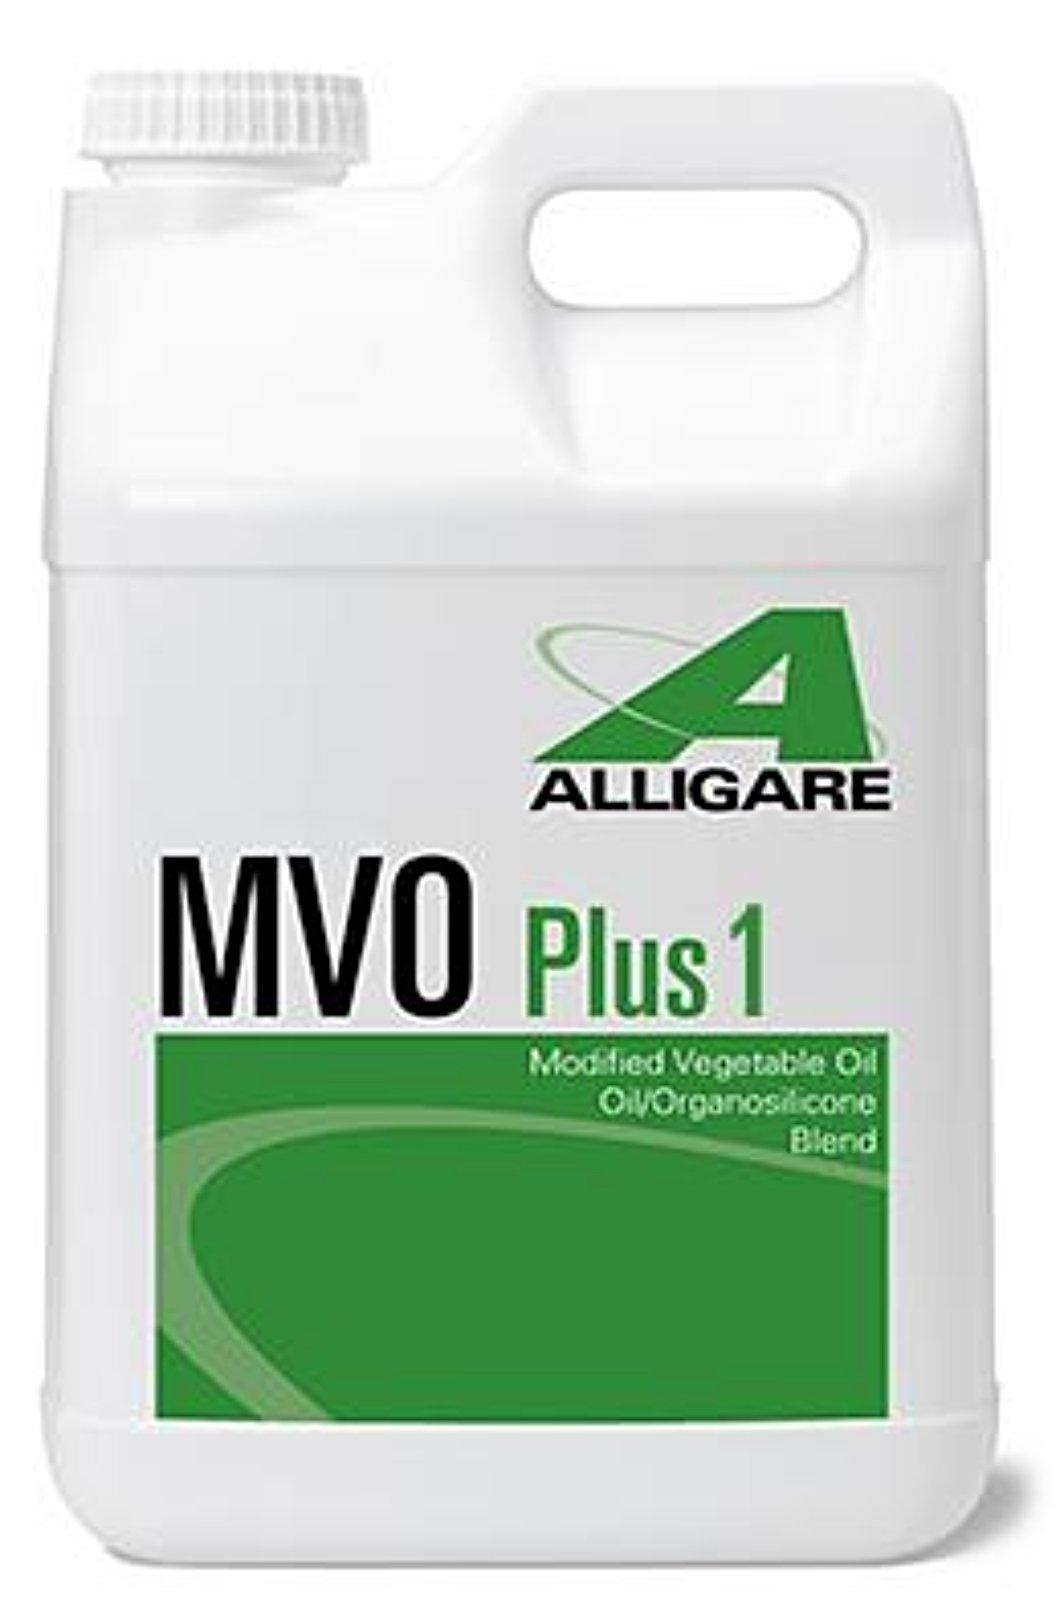 Surfactant - Alligare MVO Plus Surfactant For Herbicides